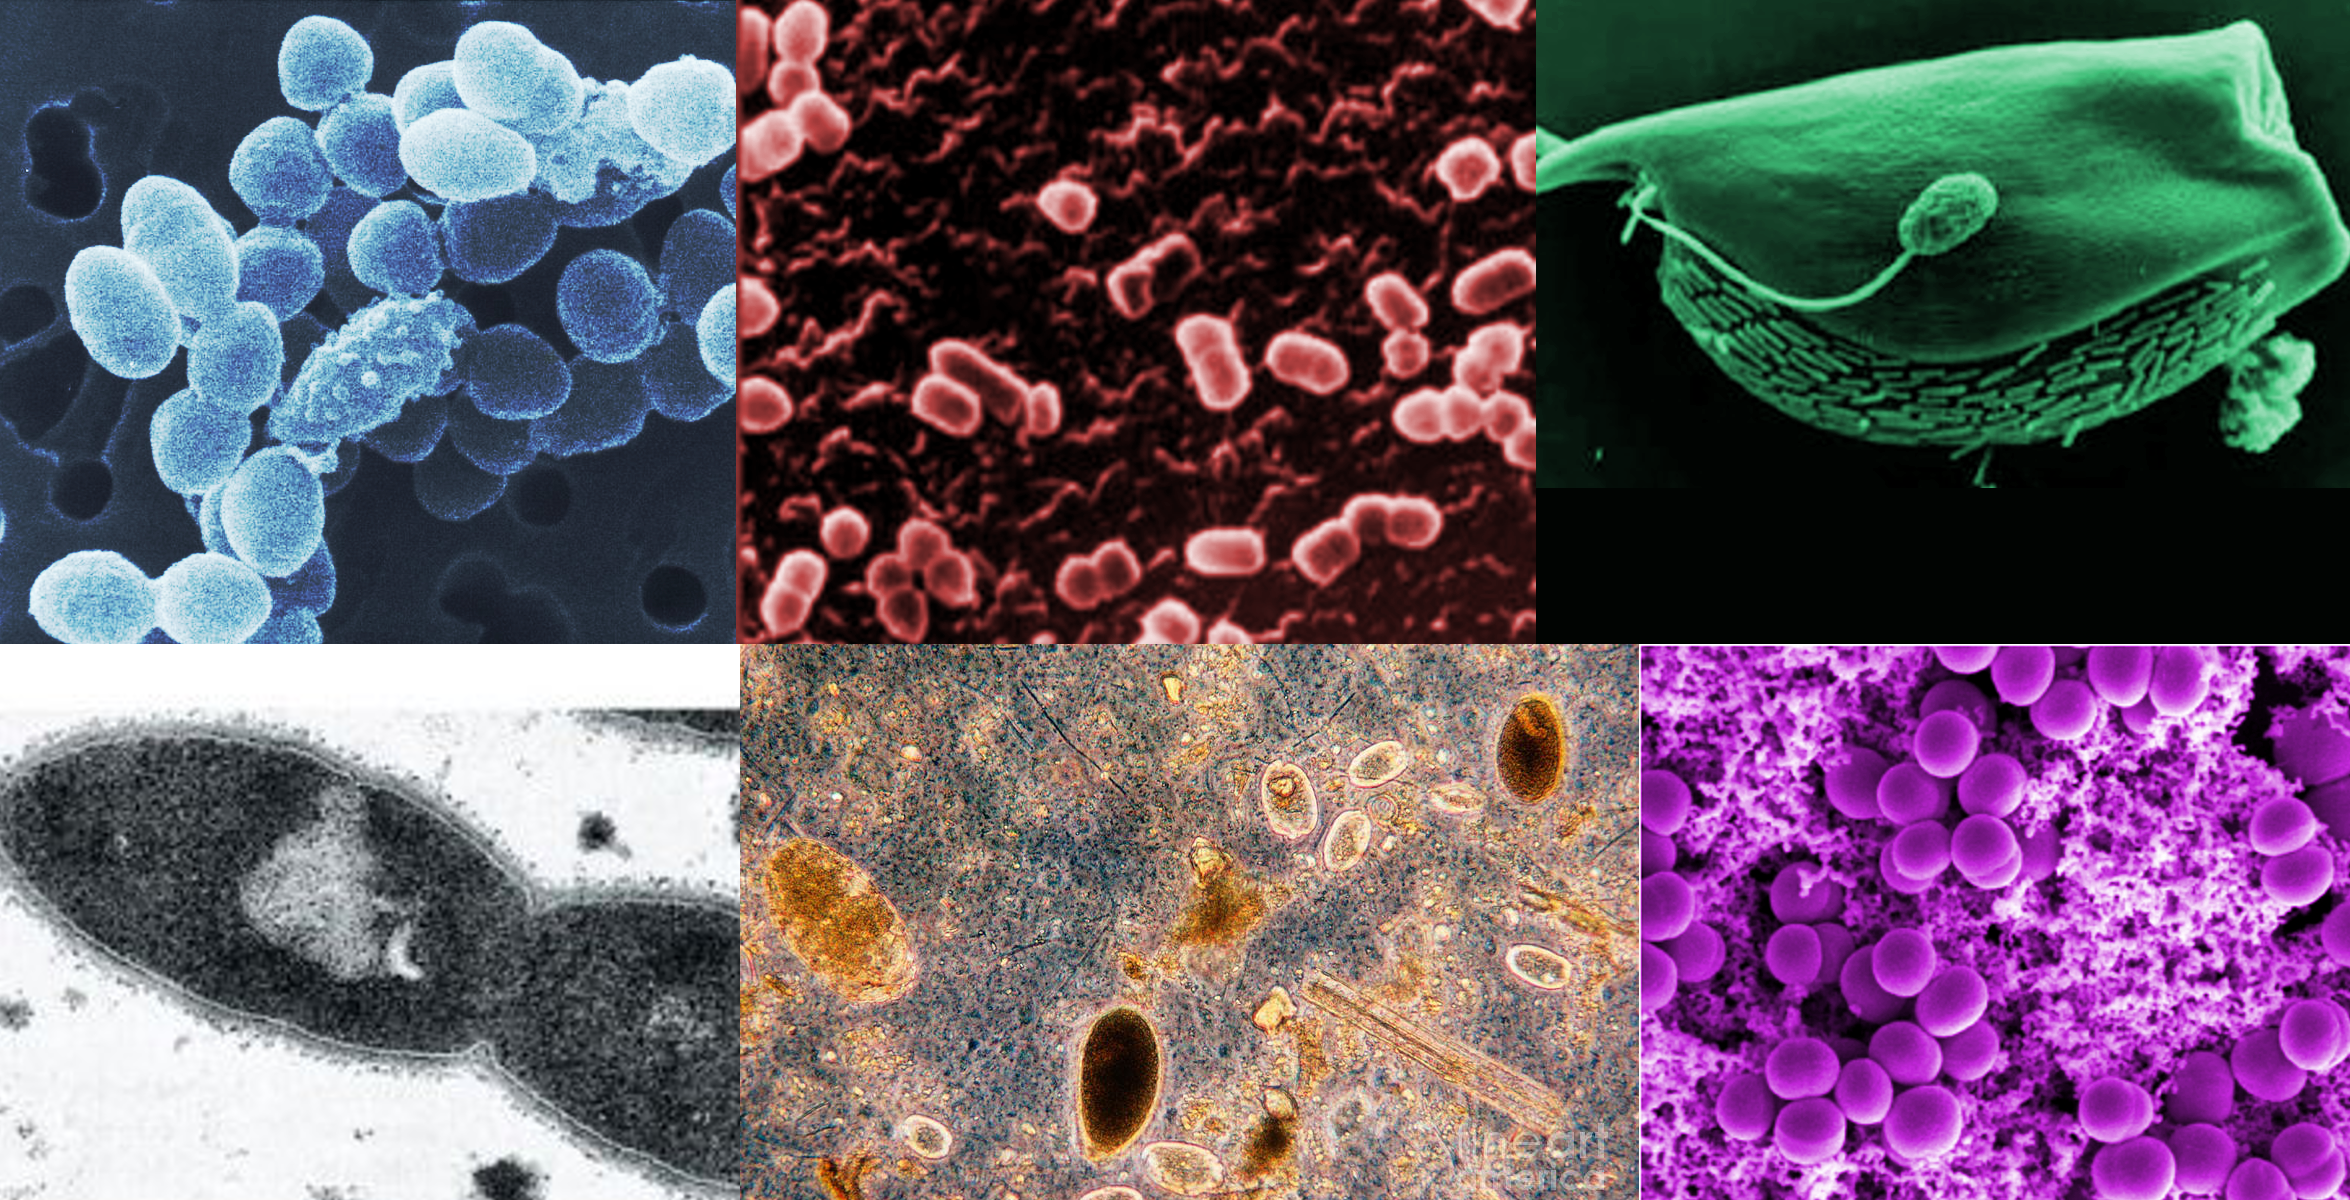 six microscopic images of various microbes